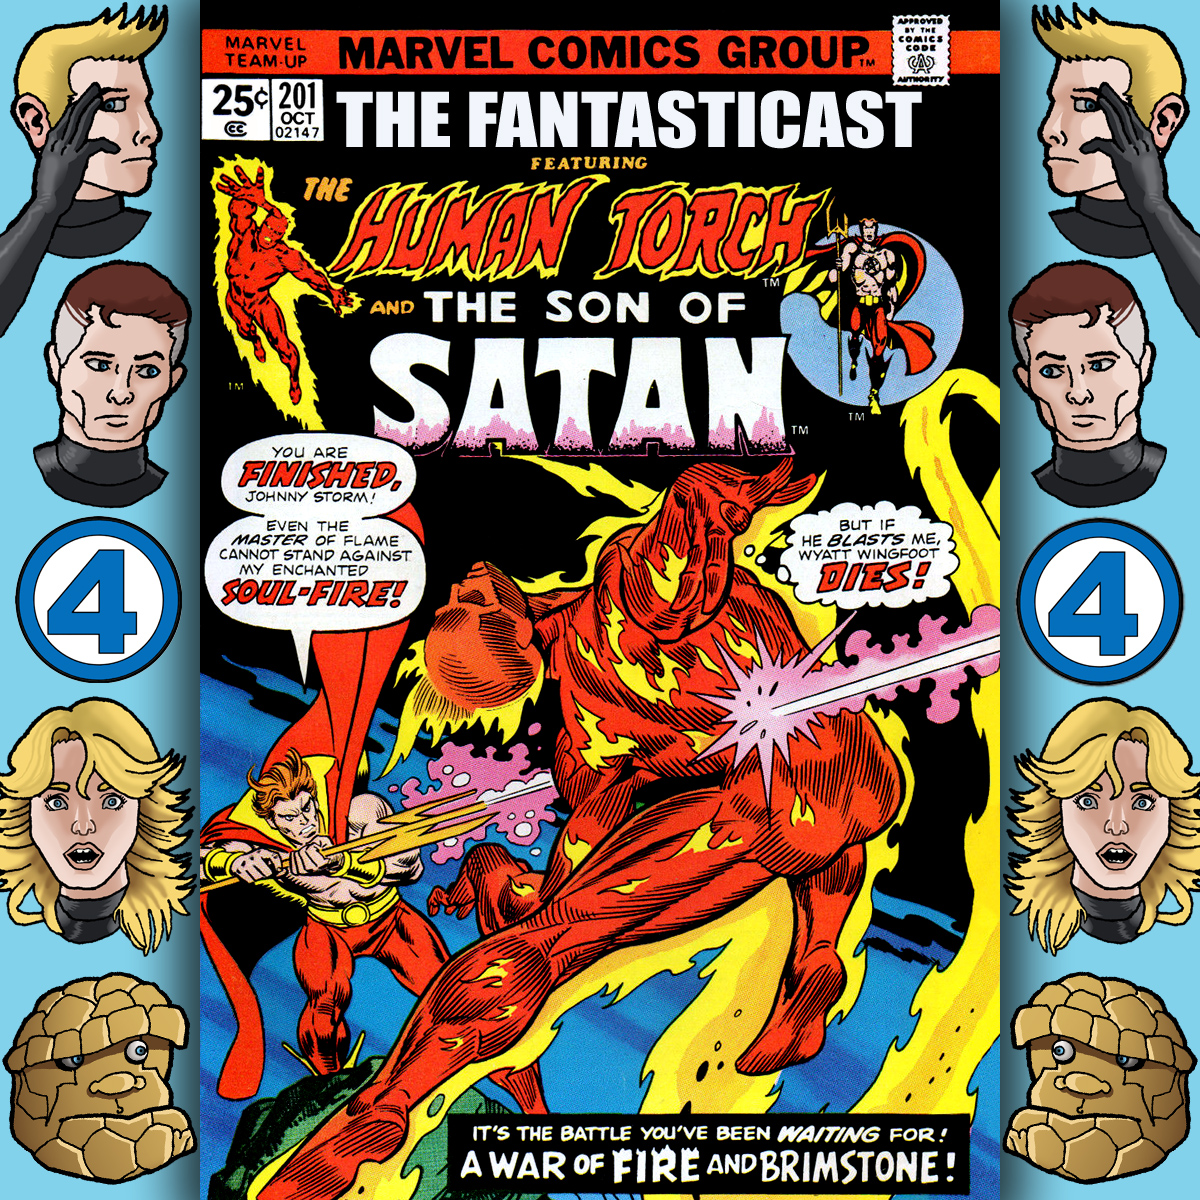 The Fantasticast Episode 201